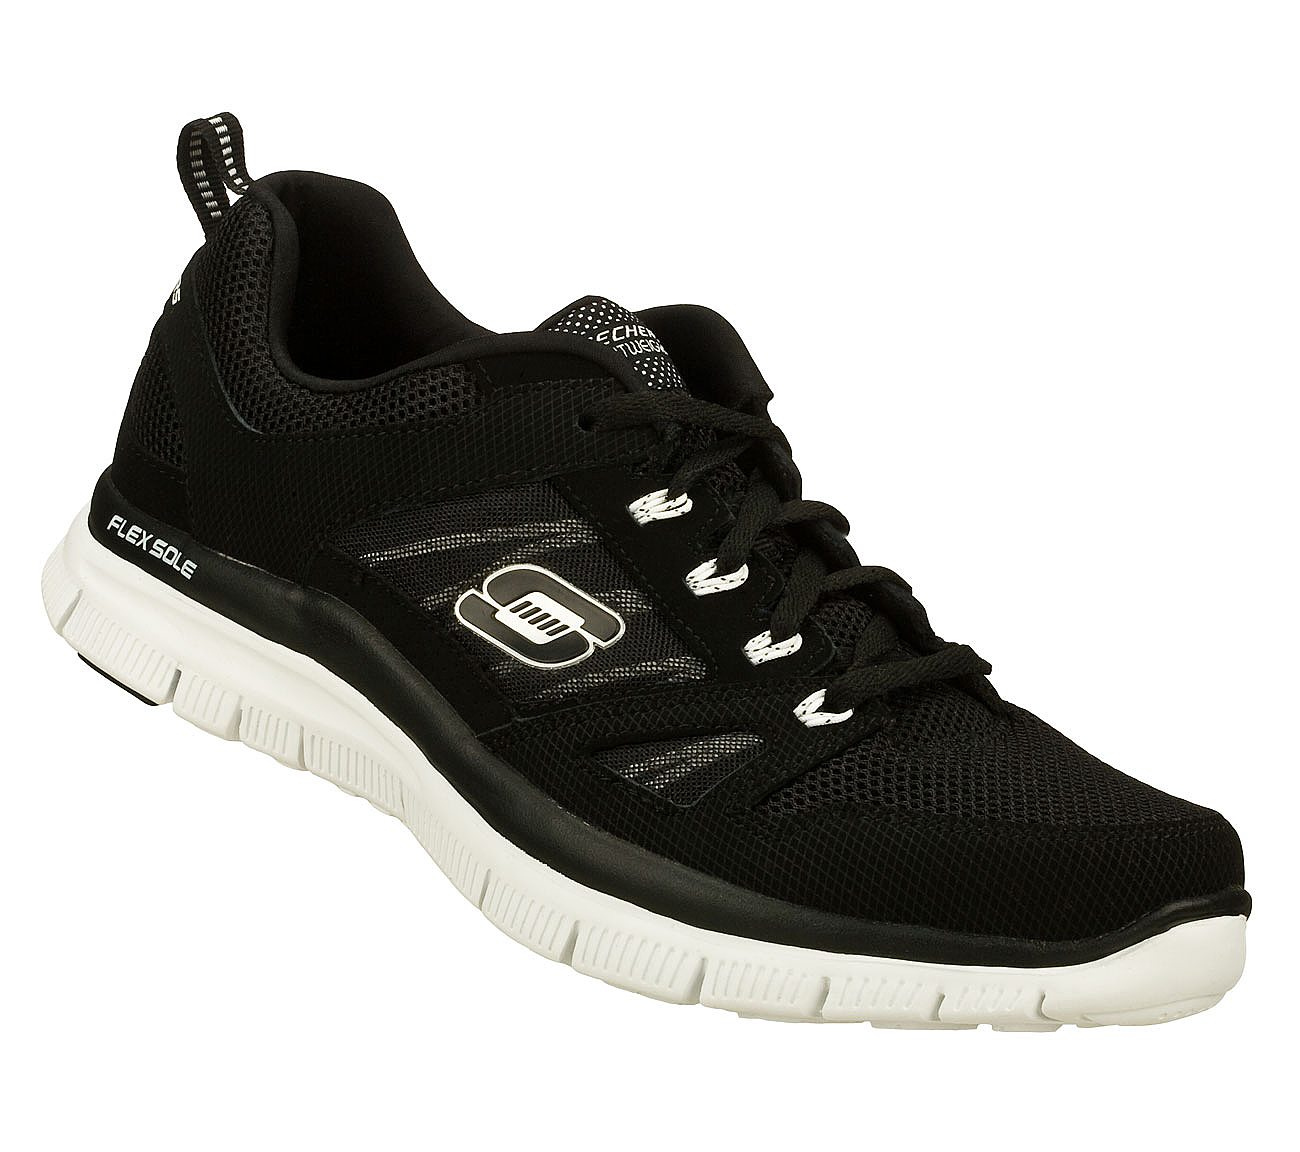 skechers lightweight flex sole